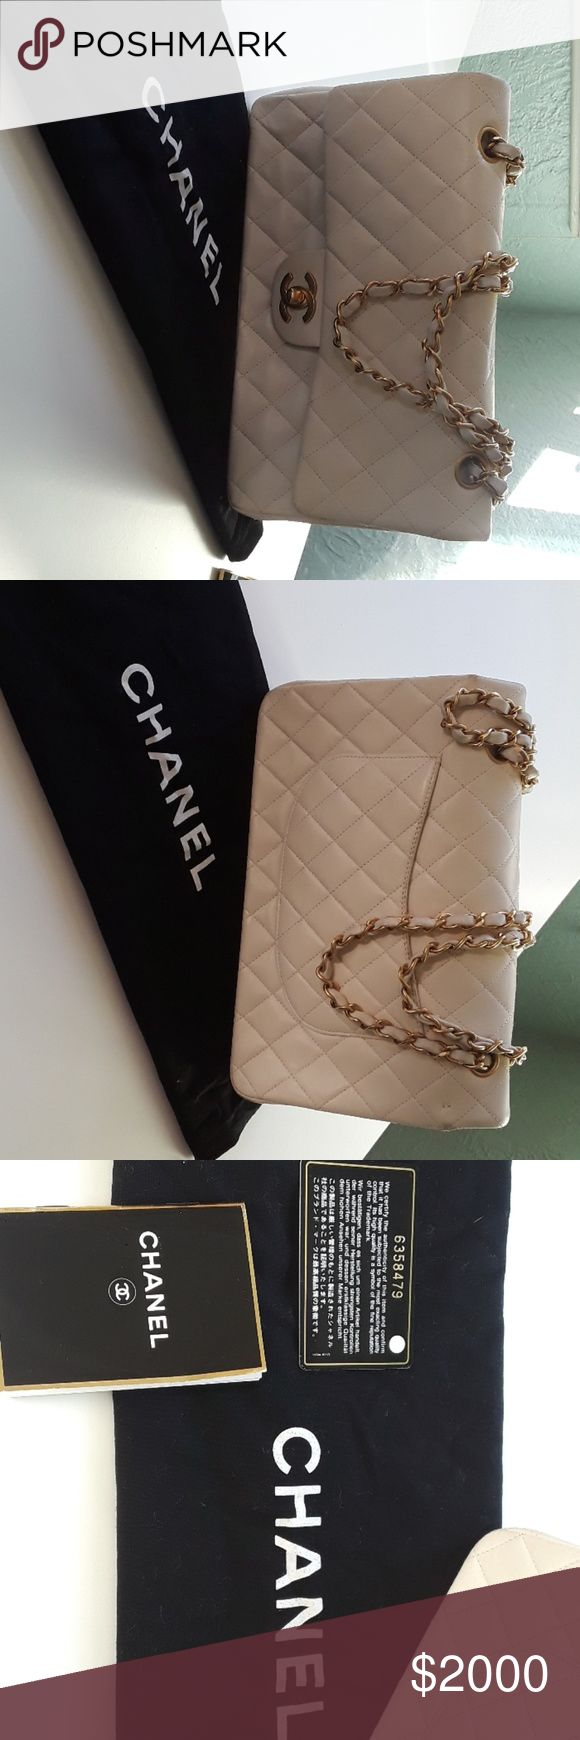 Gorgeous off white classic Chanel purse Beautiful and timeless! I'm selling this for my mom, and if I can't sell it, it's mine! I think she used it maybe 2 times at the most. Will only sell for the right price! :) Serious offers only please. CHANEL Bags Shoulder Bags